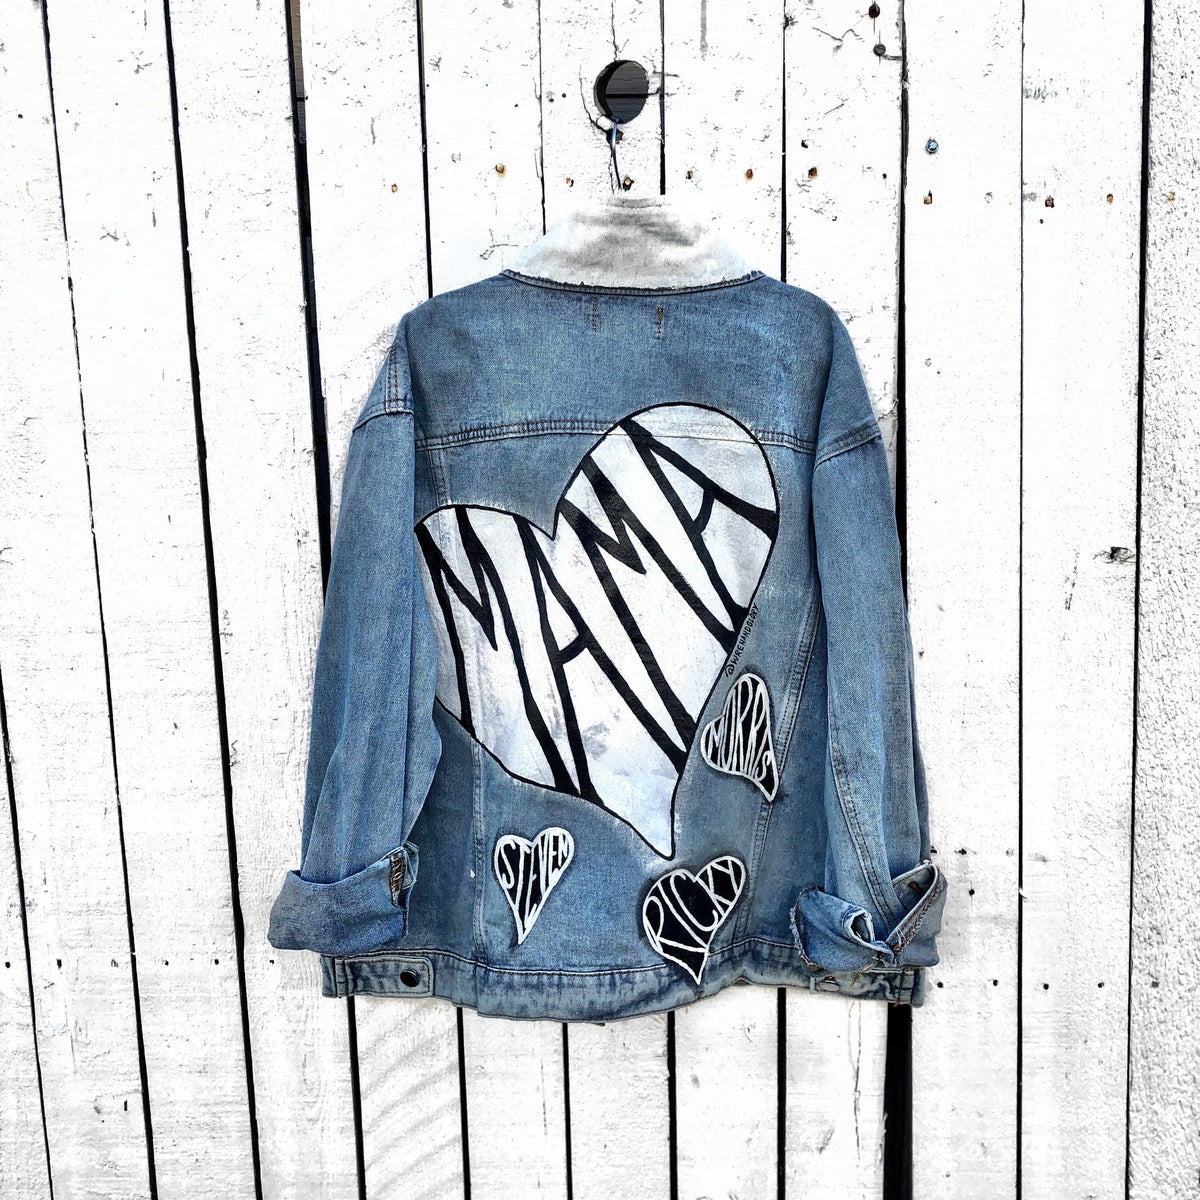 Lighter blue denim wash. Large white heart on back with MAMA painted inside in black. Smaller black hearts surrounding the larger one, customized with kids names. Collar and front pockets painted white. Signed @wrenandglory.